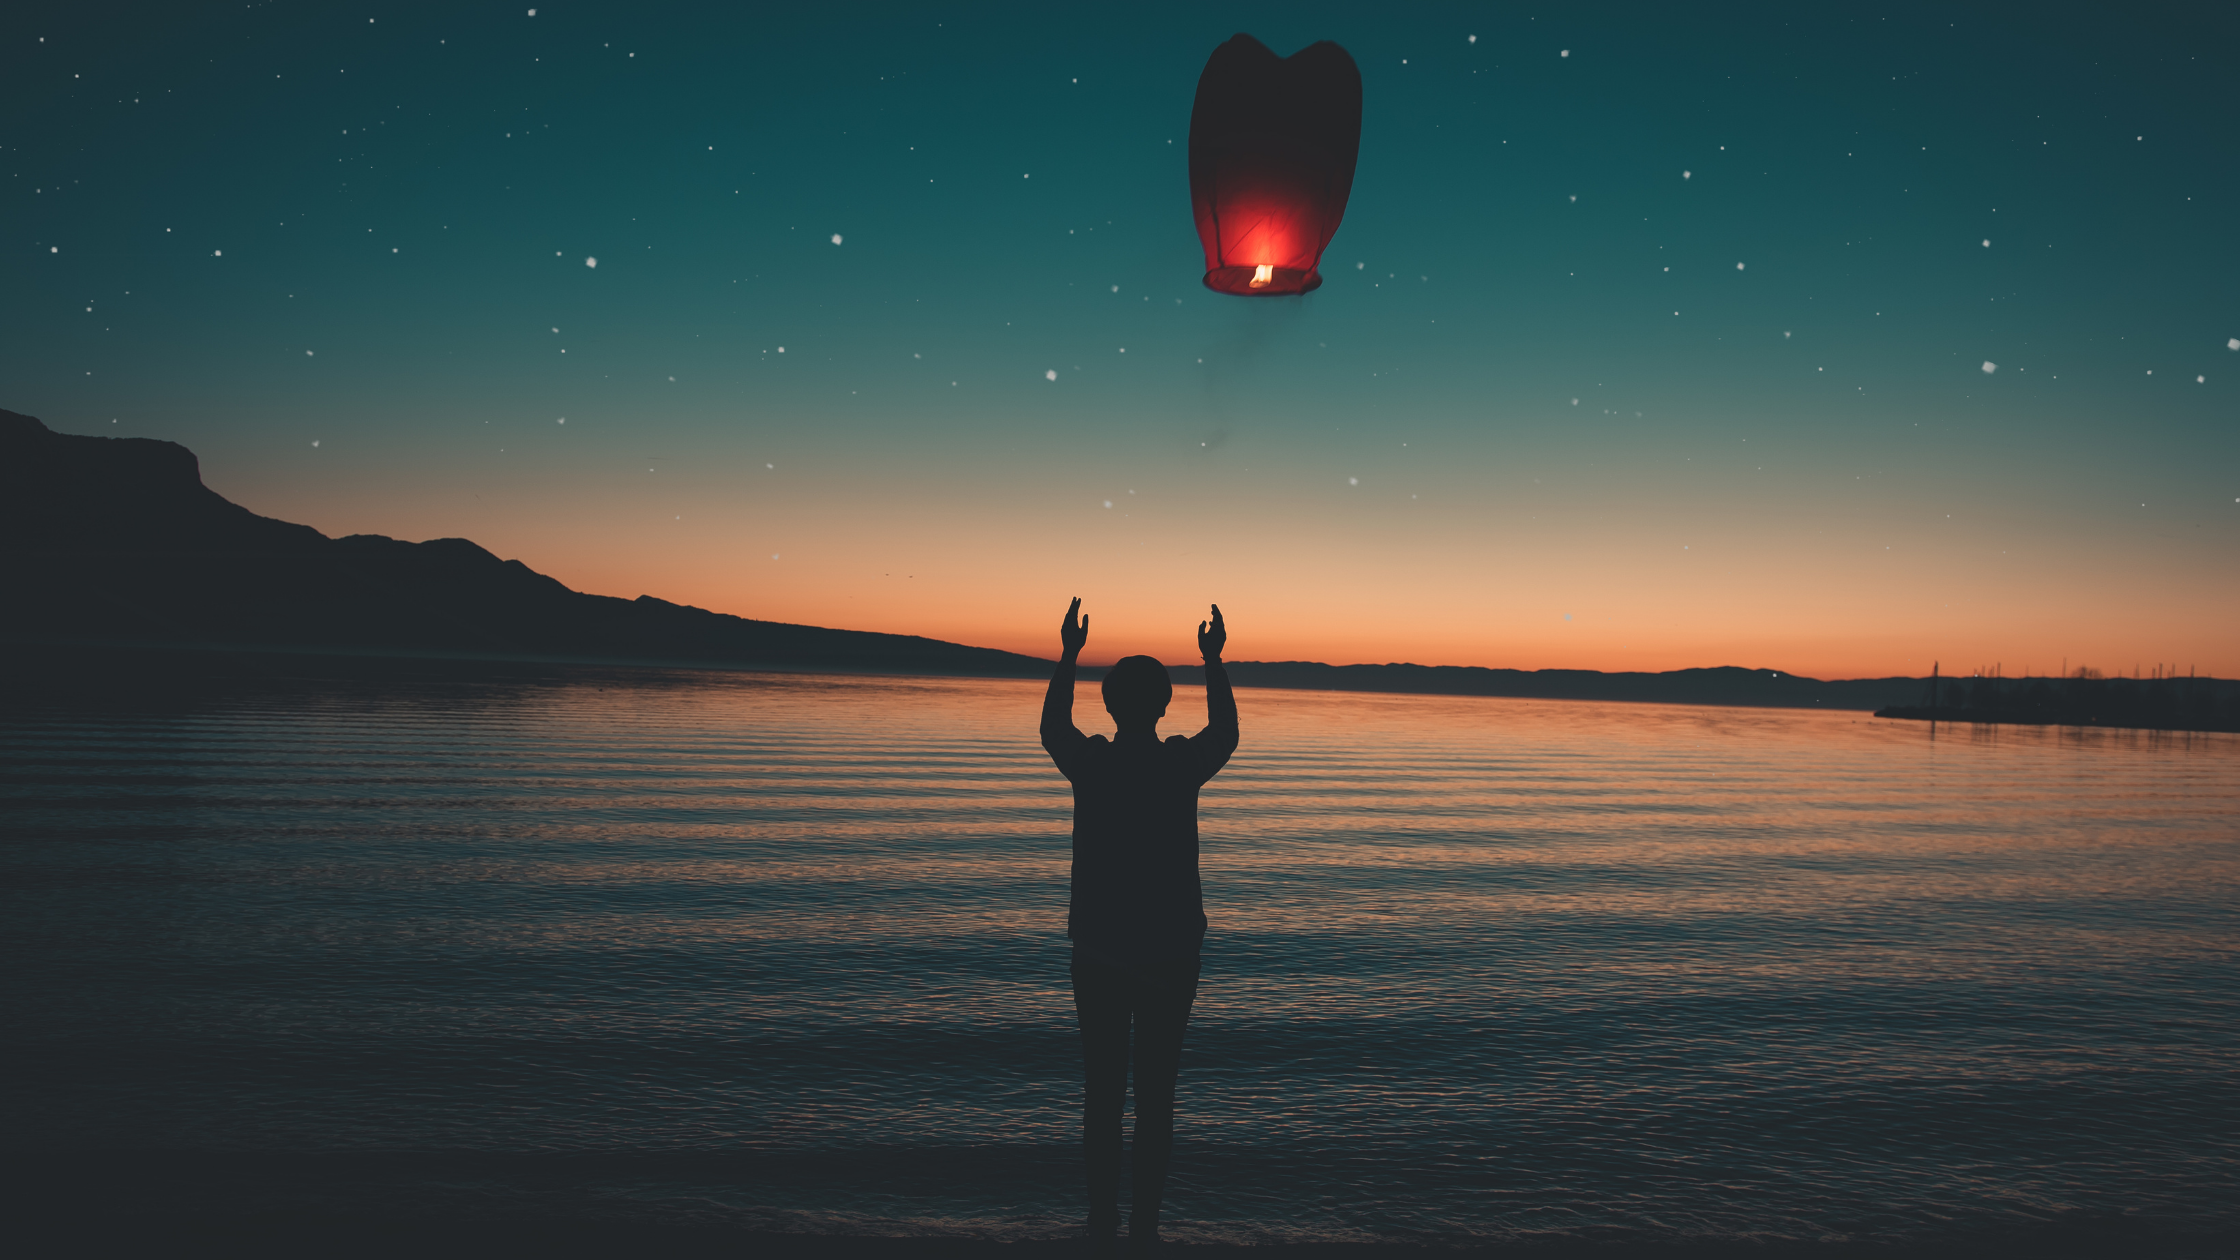 man letting a lit paper lantern into the sky at the ocean